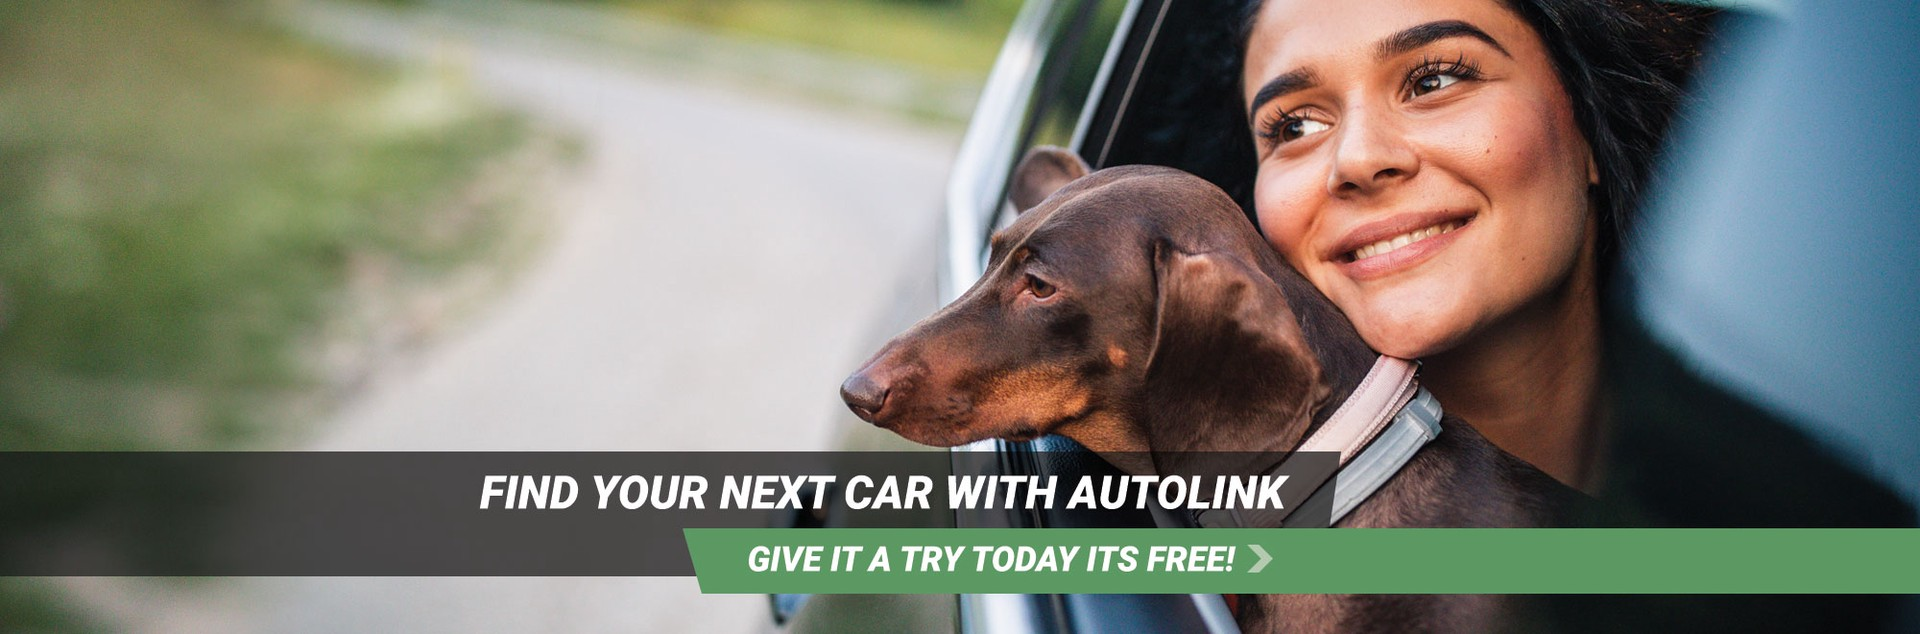 Find your next car with AutoLink. Give it a try. It's free.